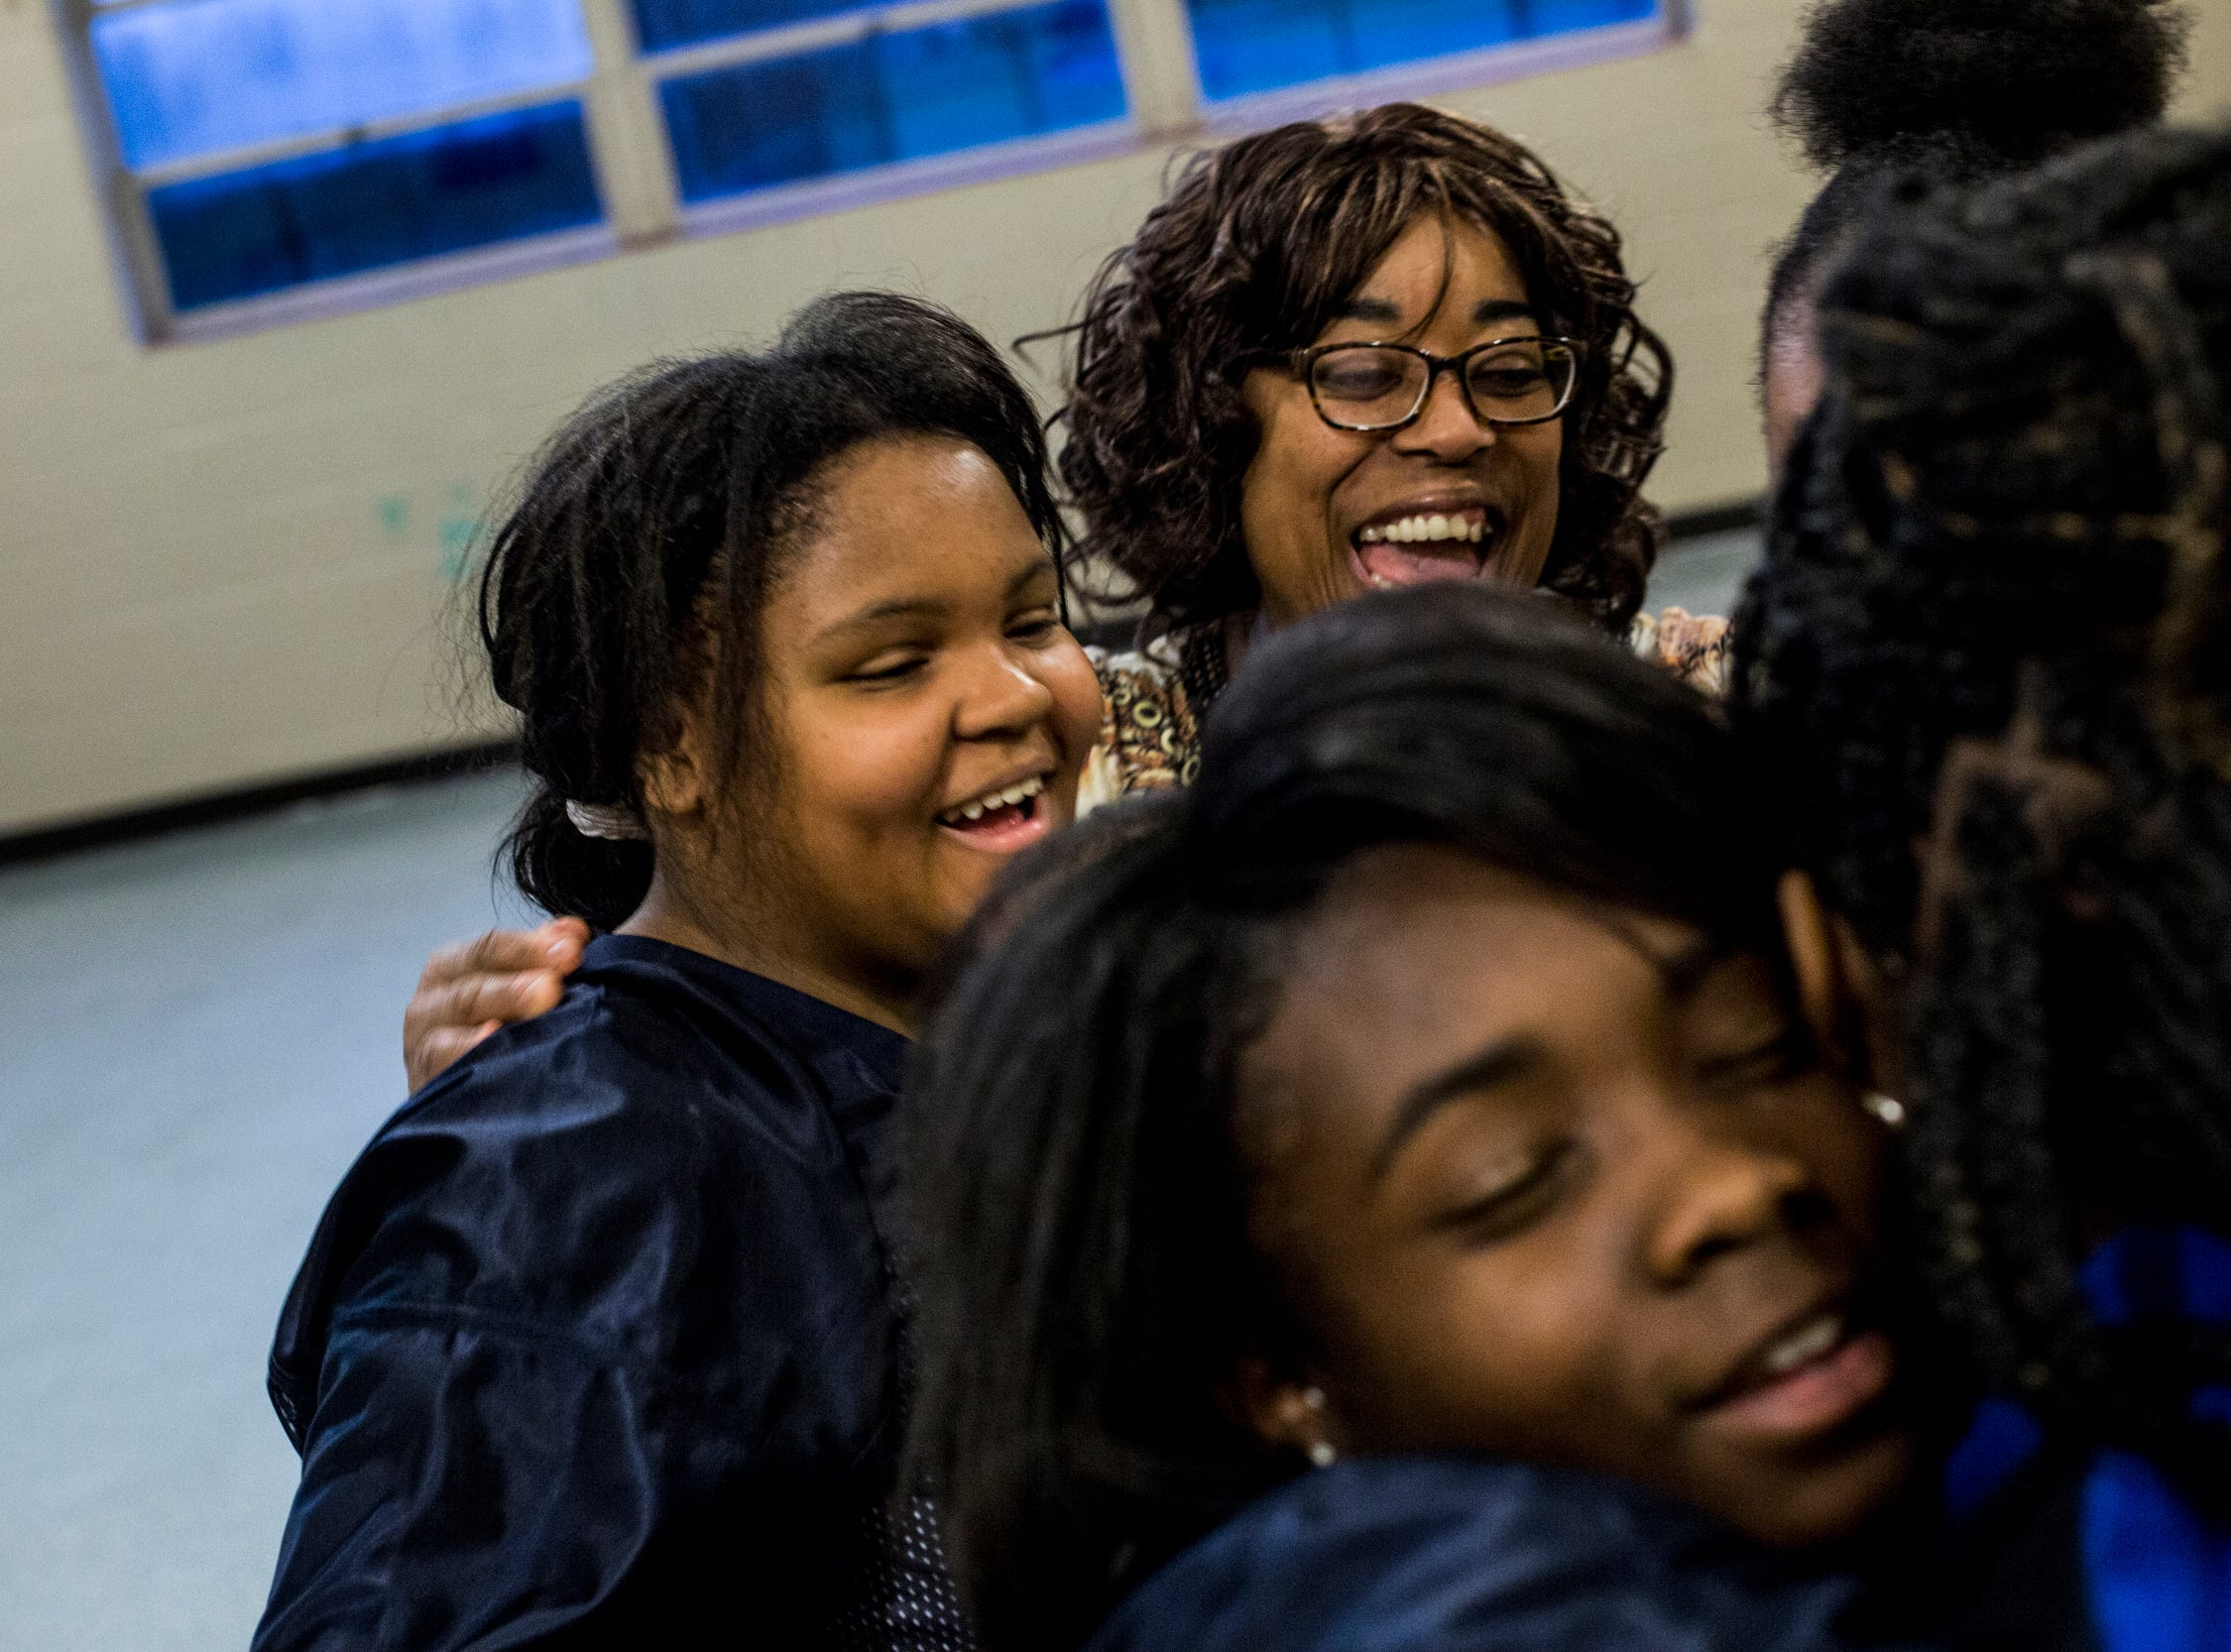 Volunteer coach Sharon Cole, top right, embraces members of the Memphis Community Youth Mighty Marchers after a practice at the Ed Rice Community Center in Frayser on March 28, 2019.